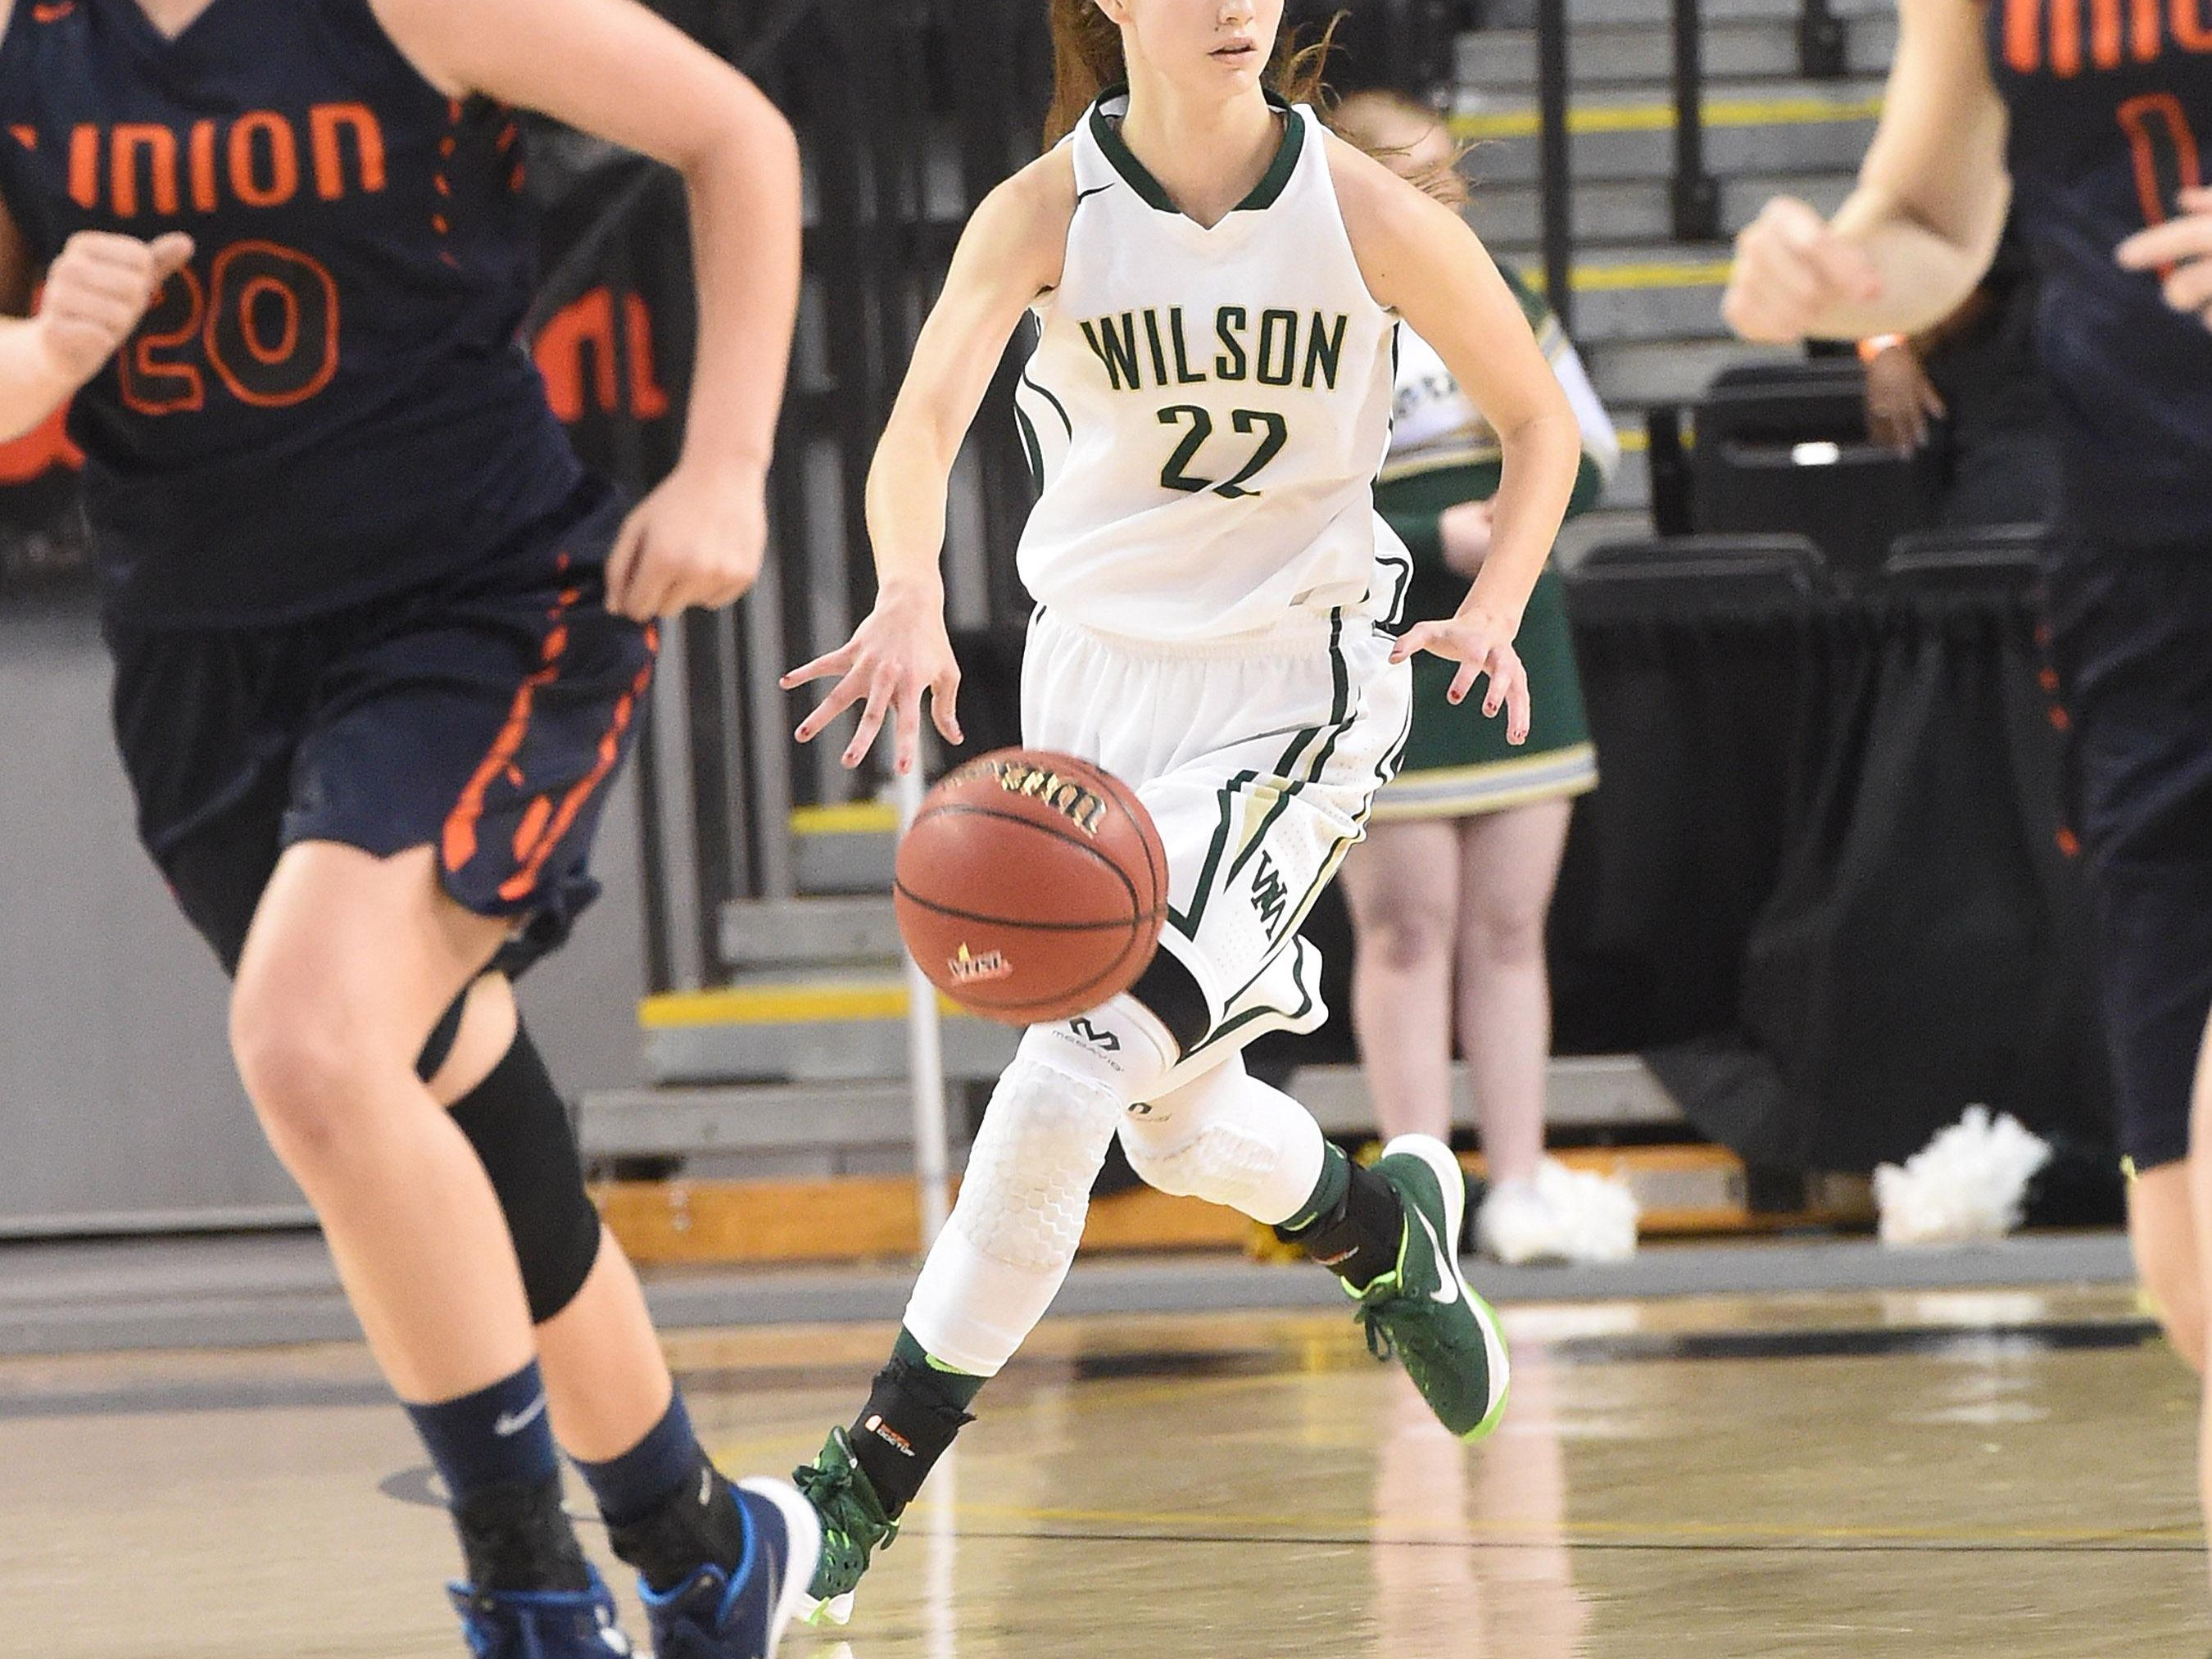 Wilson Memorial's Lexi Deffenbaugh takes the ball downcourt during the Group 2A state semifinals played in Richmond on Thursday, March 10, 2016. Wilson lost to Union, 54-41.